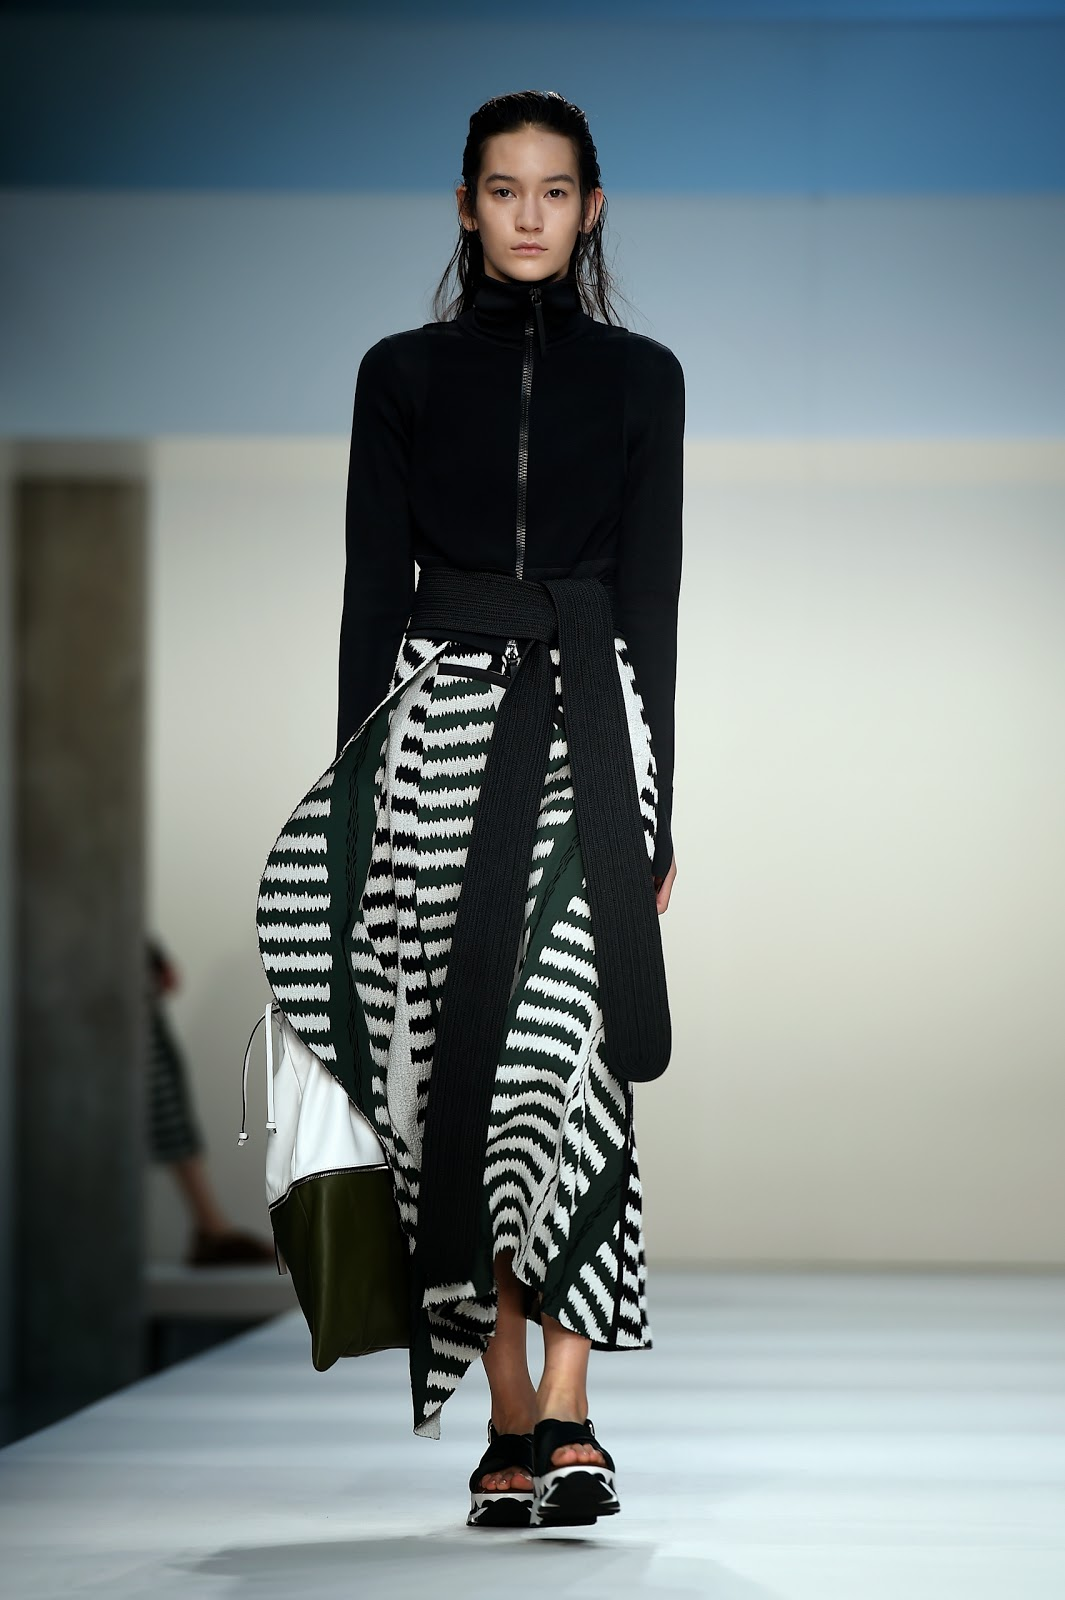 Milan Fashion Week 2015 - Marni Collection in Pictures